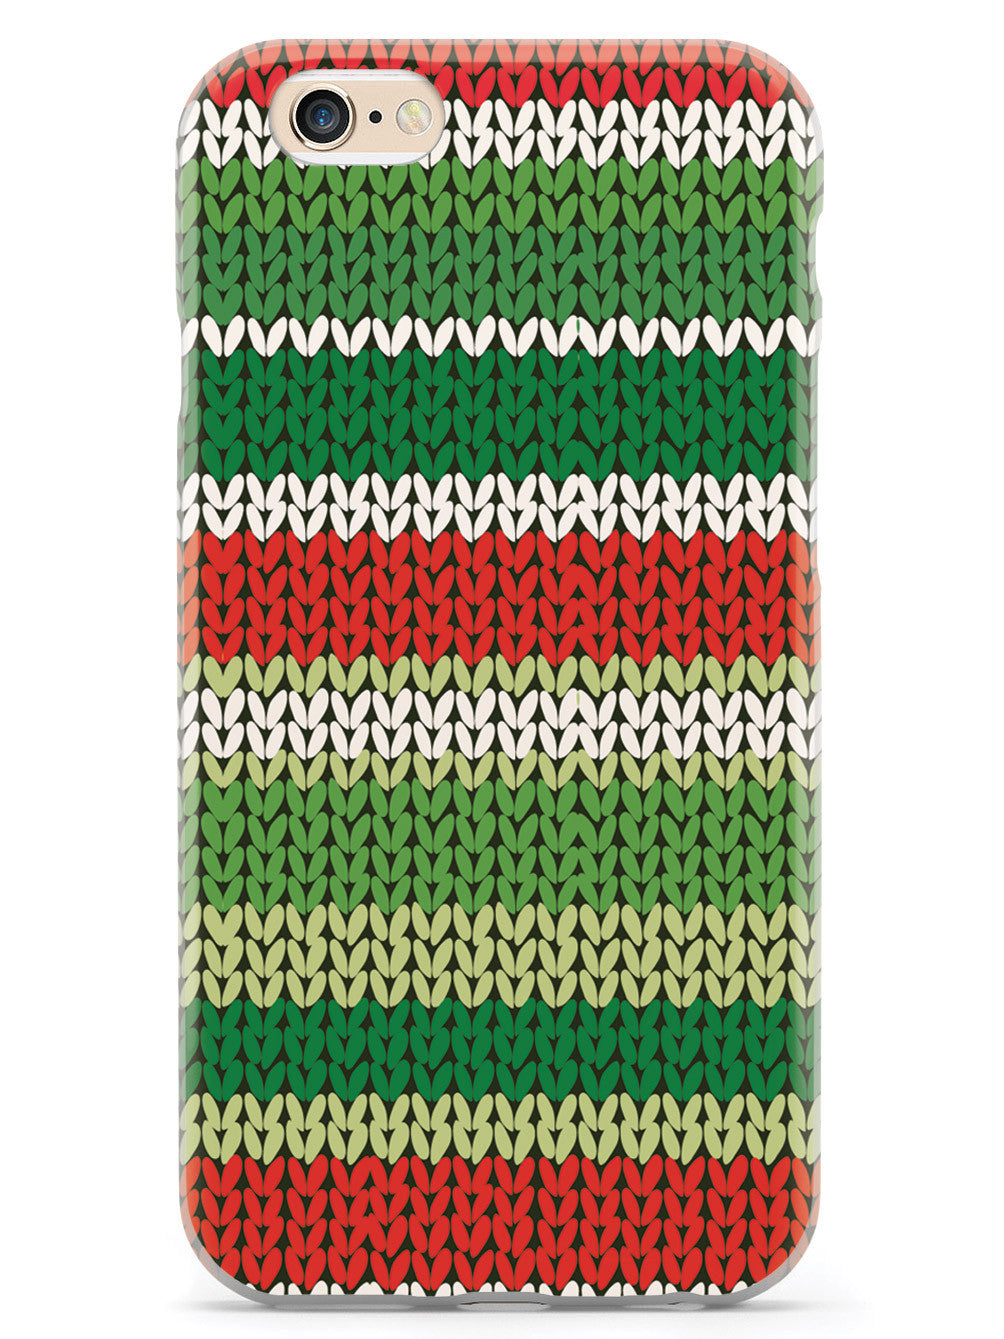 Red and Green Sweater Texture - White Case